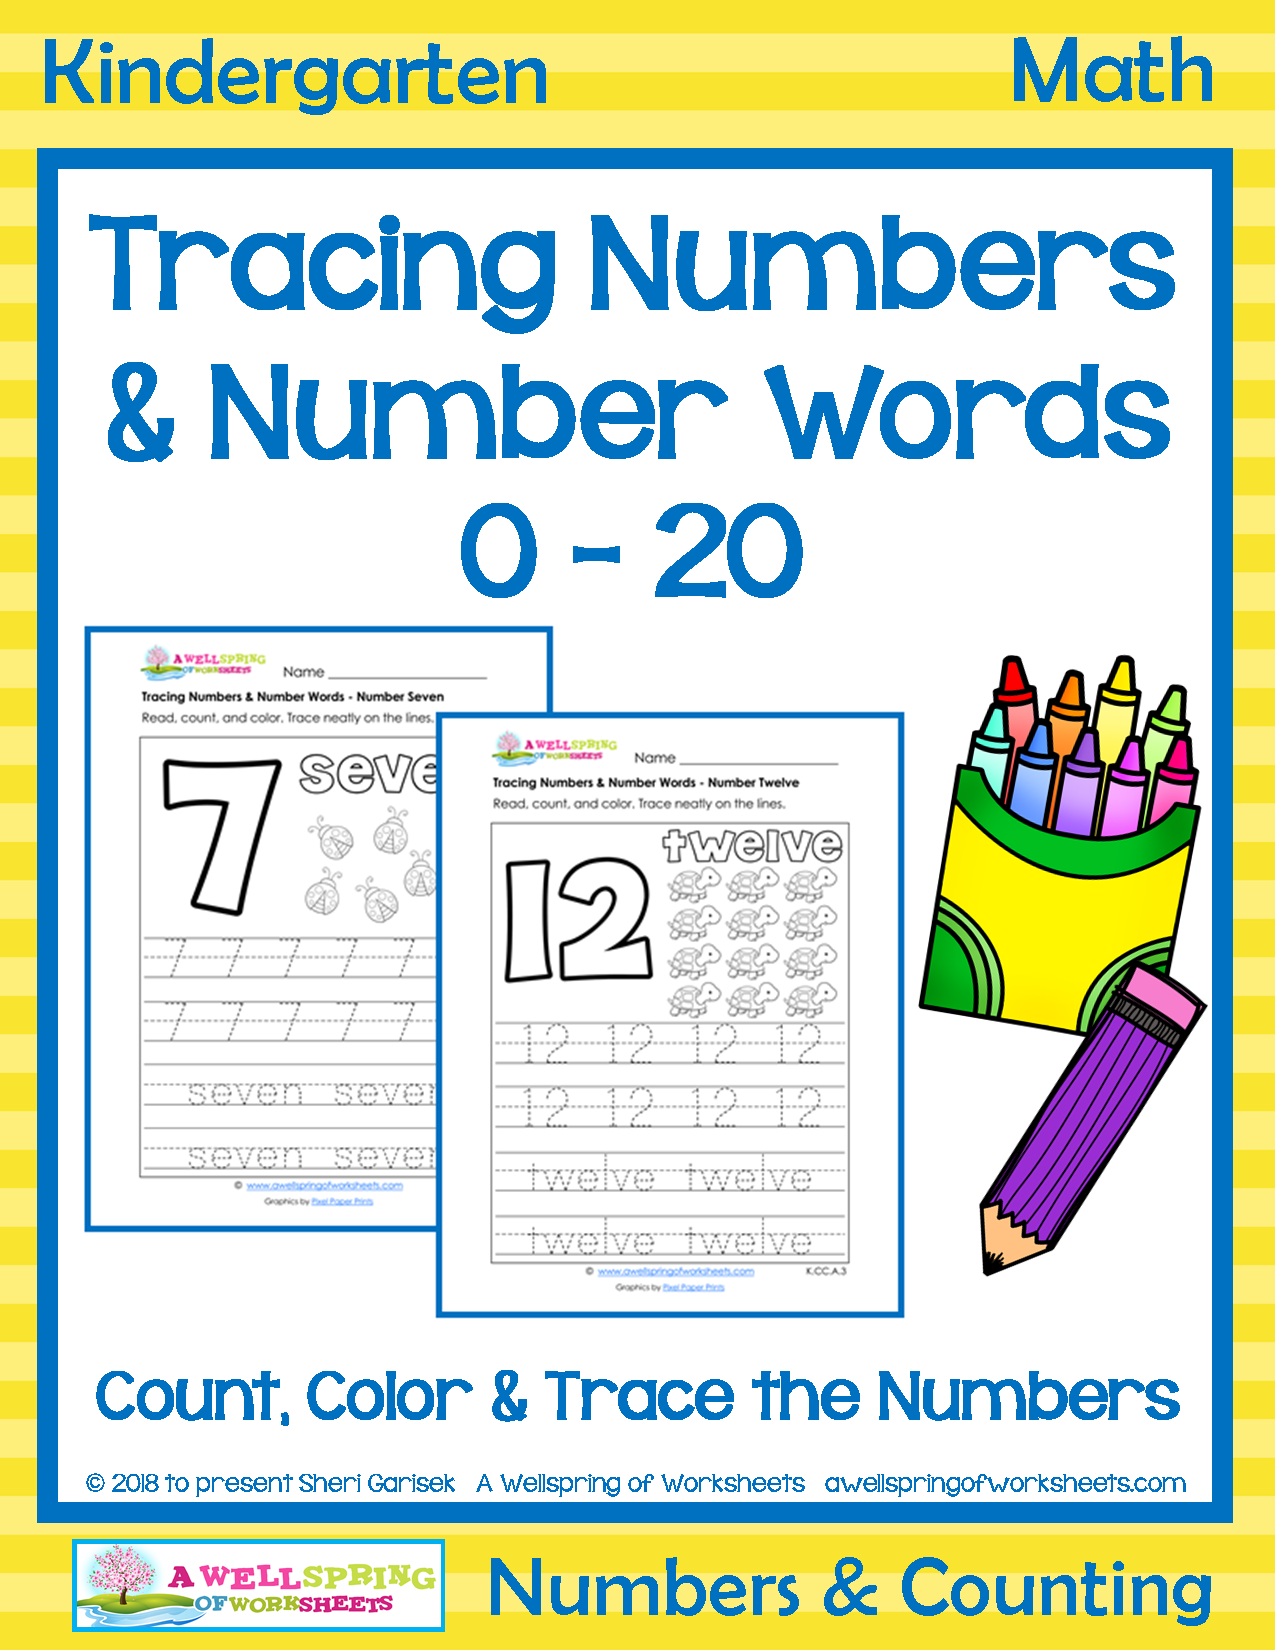 Lots Of Great Number Tracing On These Worksheets Kids Color In The Bubble Font Number Count The Objects And Trace Number Words Kindergarten Math Word Skills [ 1650 x 1275 Pixel ]